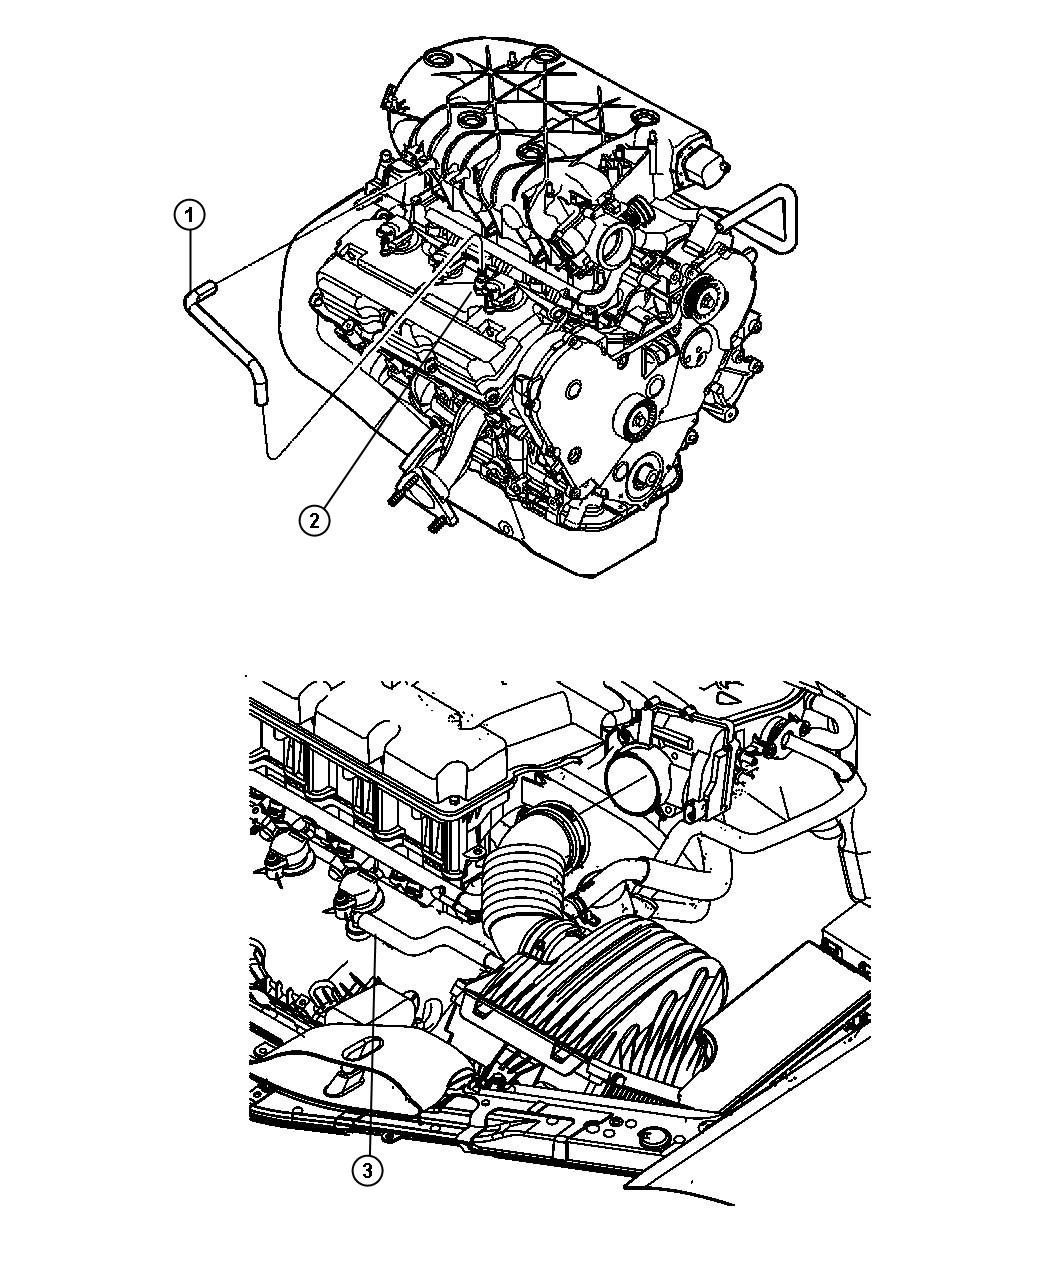 2010 Dodge Journey 3 5l Engine Diagram. Dodge. Auto Wiring